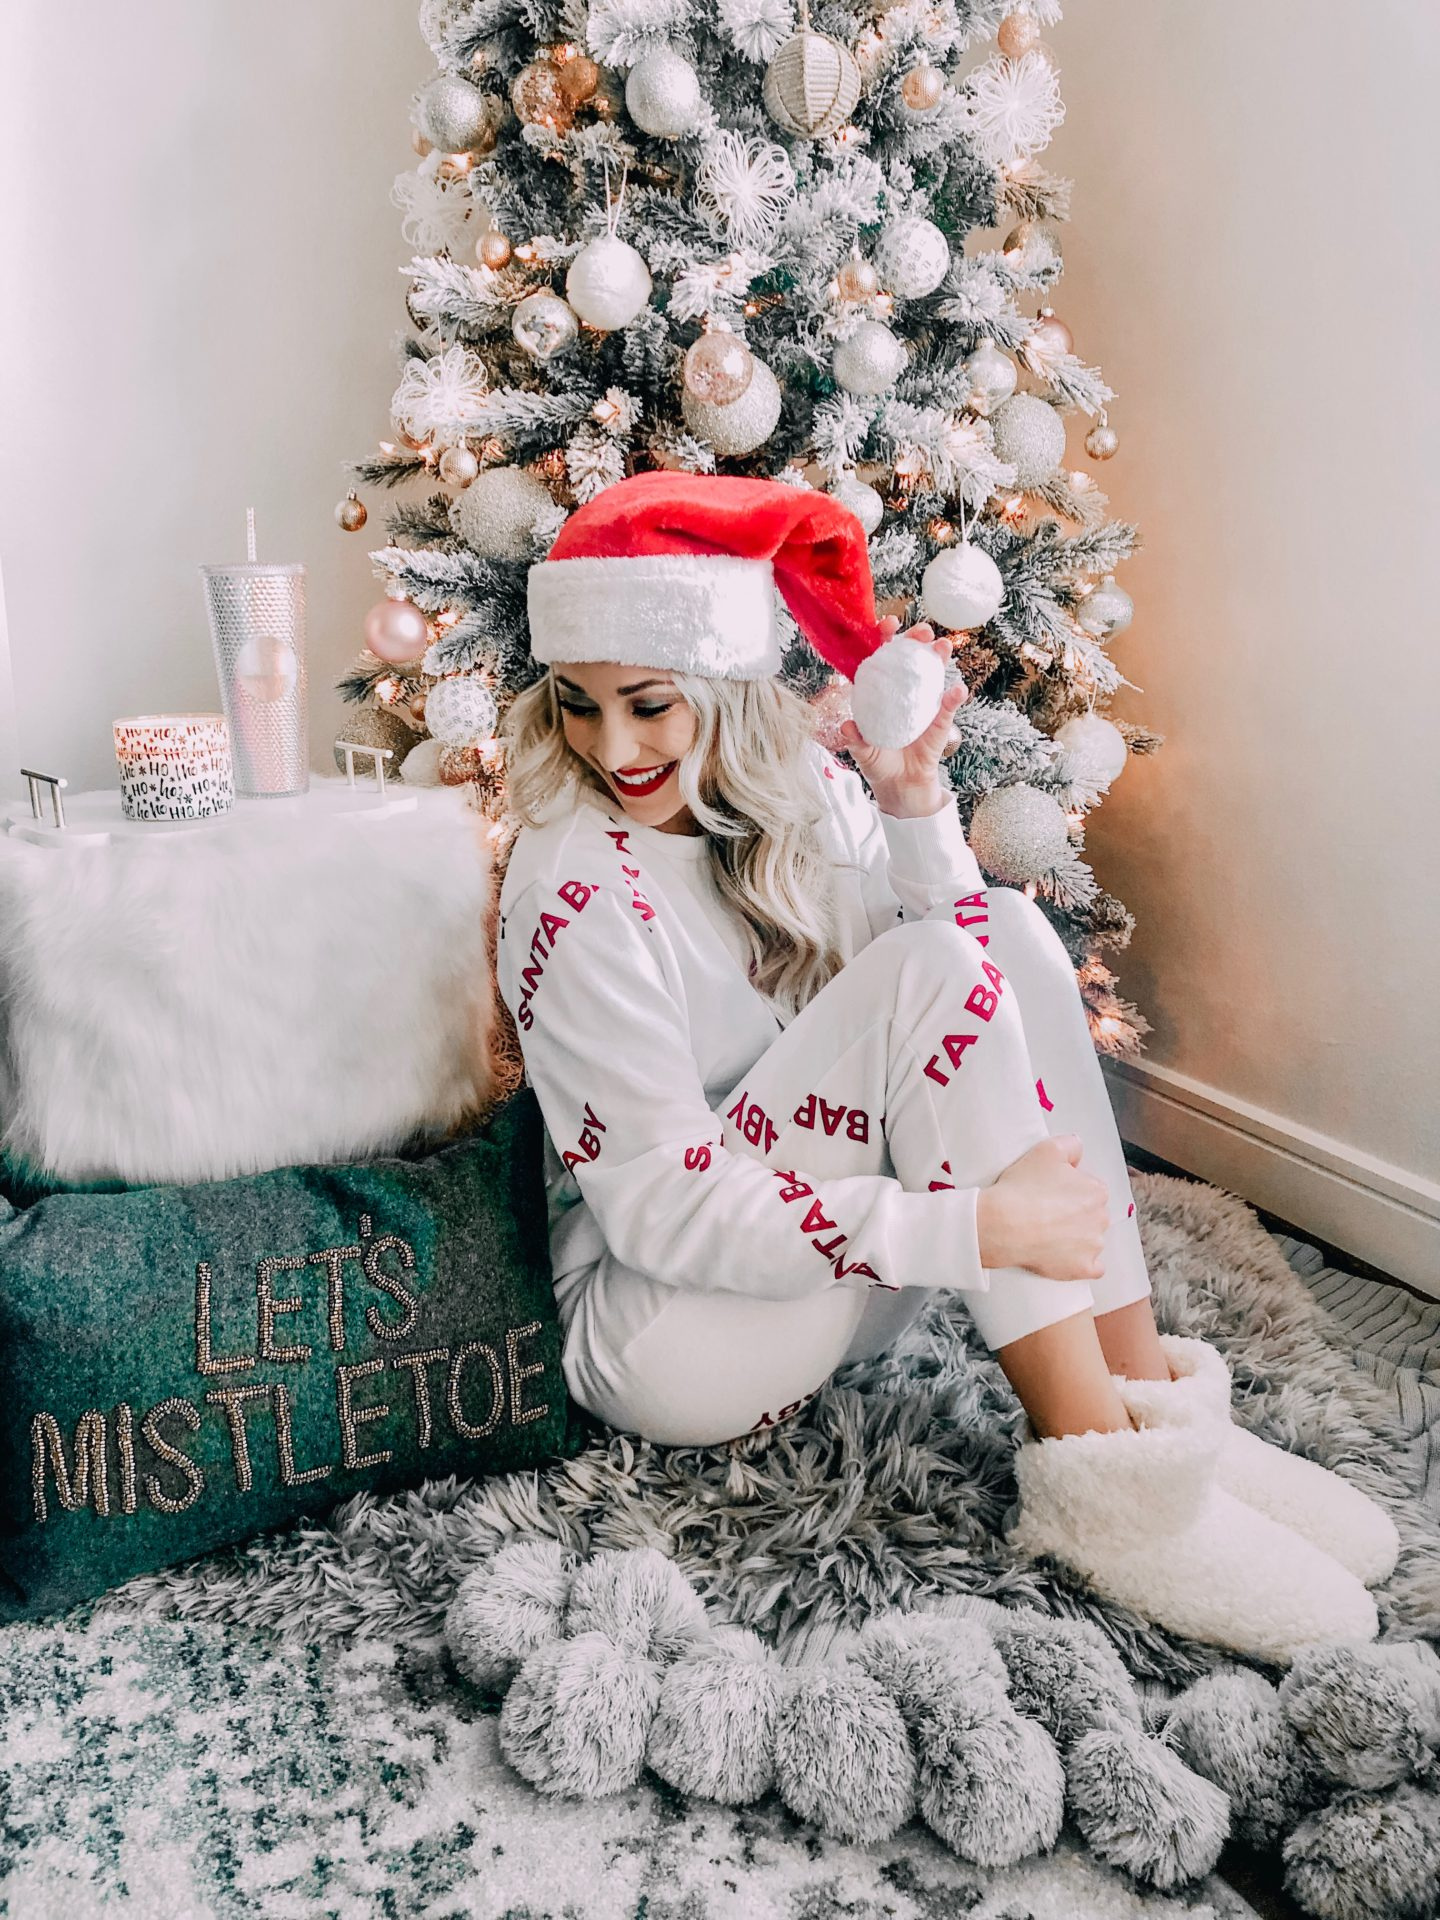 Gifts for Her - Dallas Fashion Model, Fashion & Lifestyle Blogger - Peyton Mabry